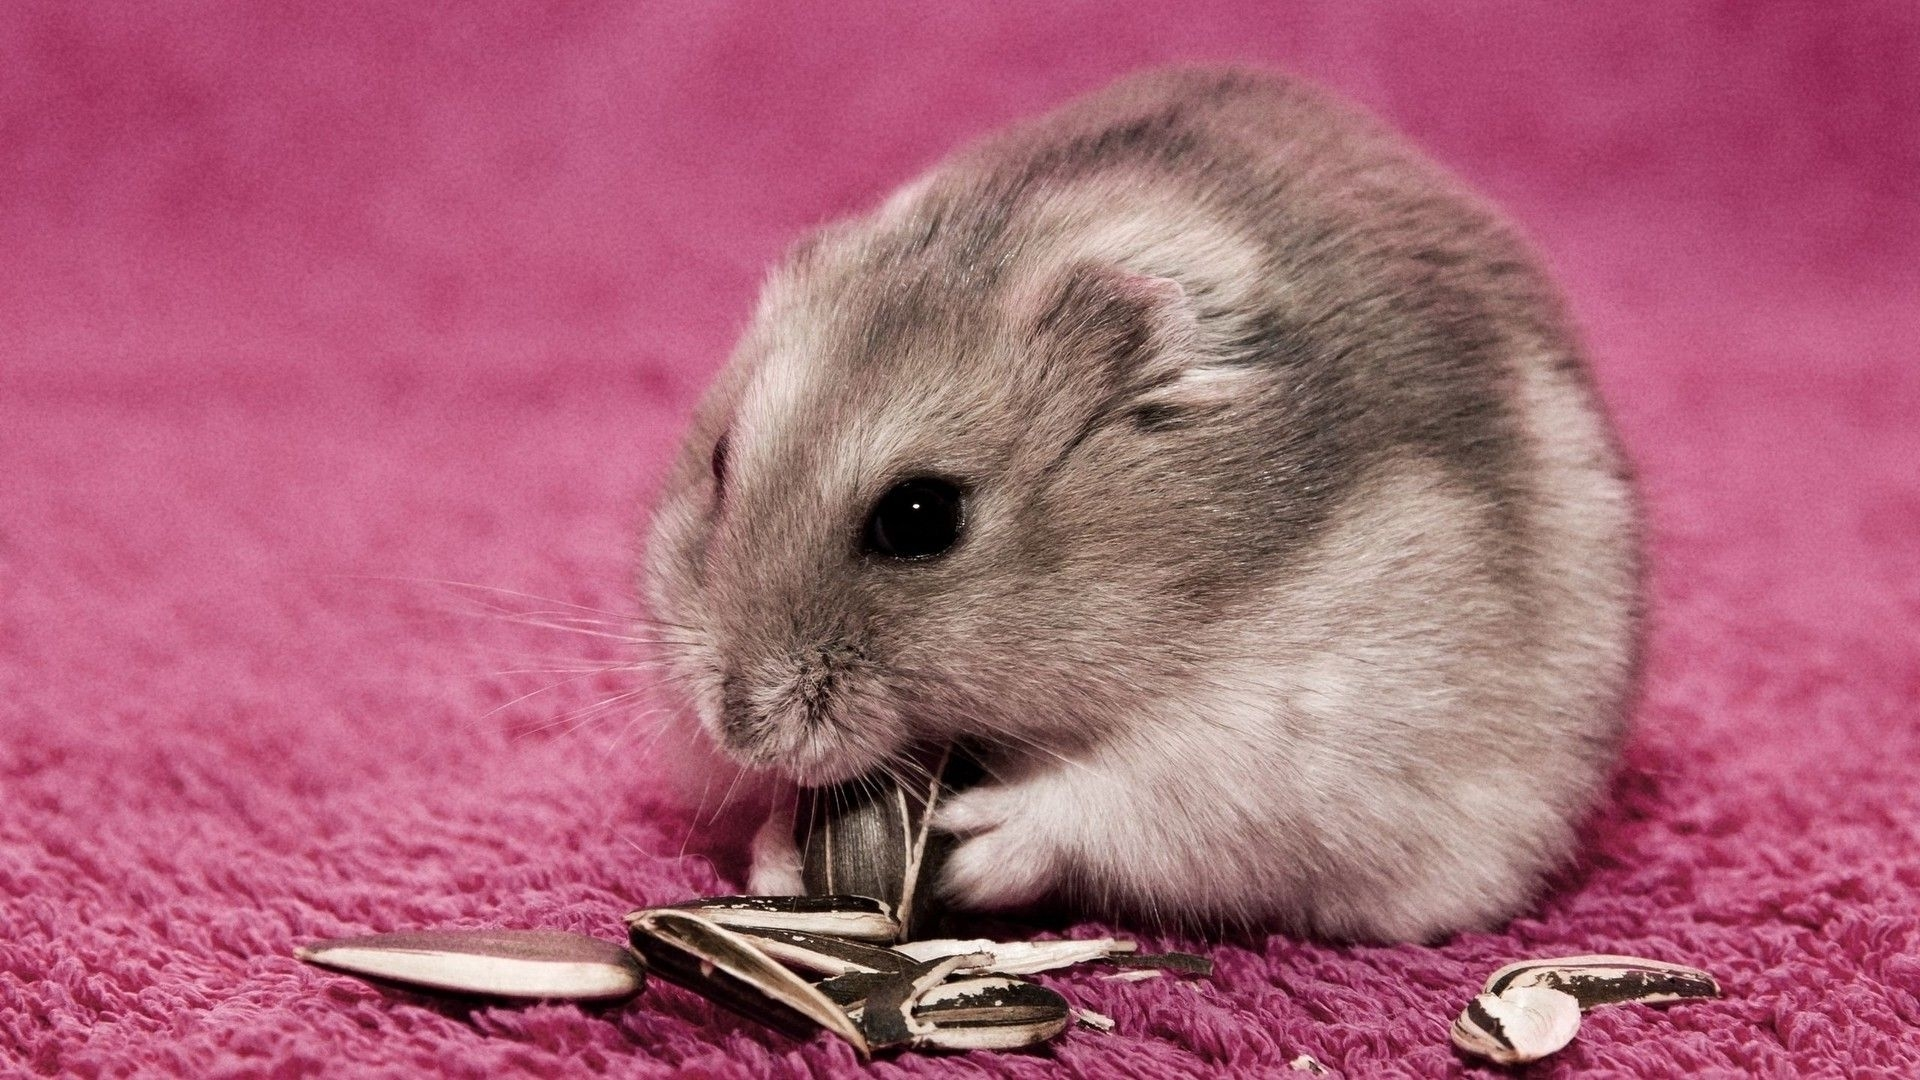 hamster wallpapers for deskto